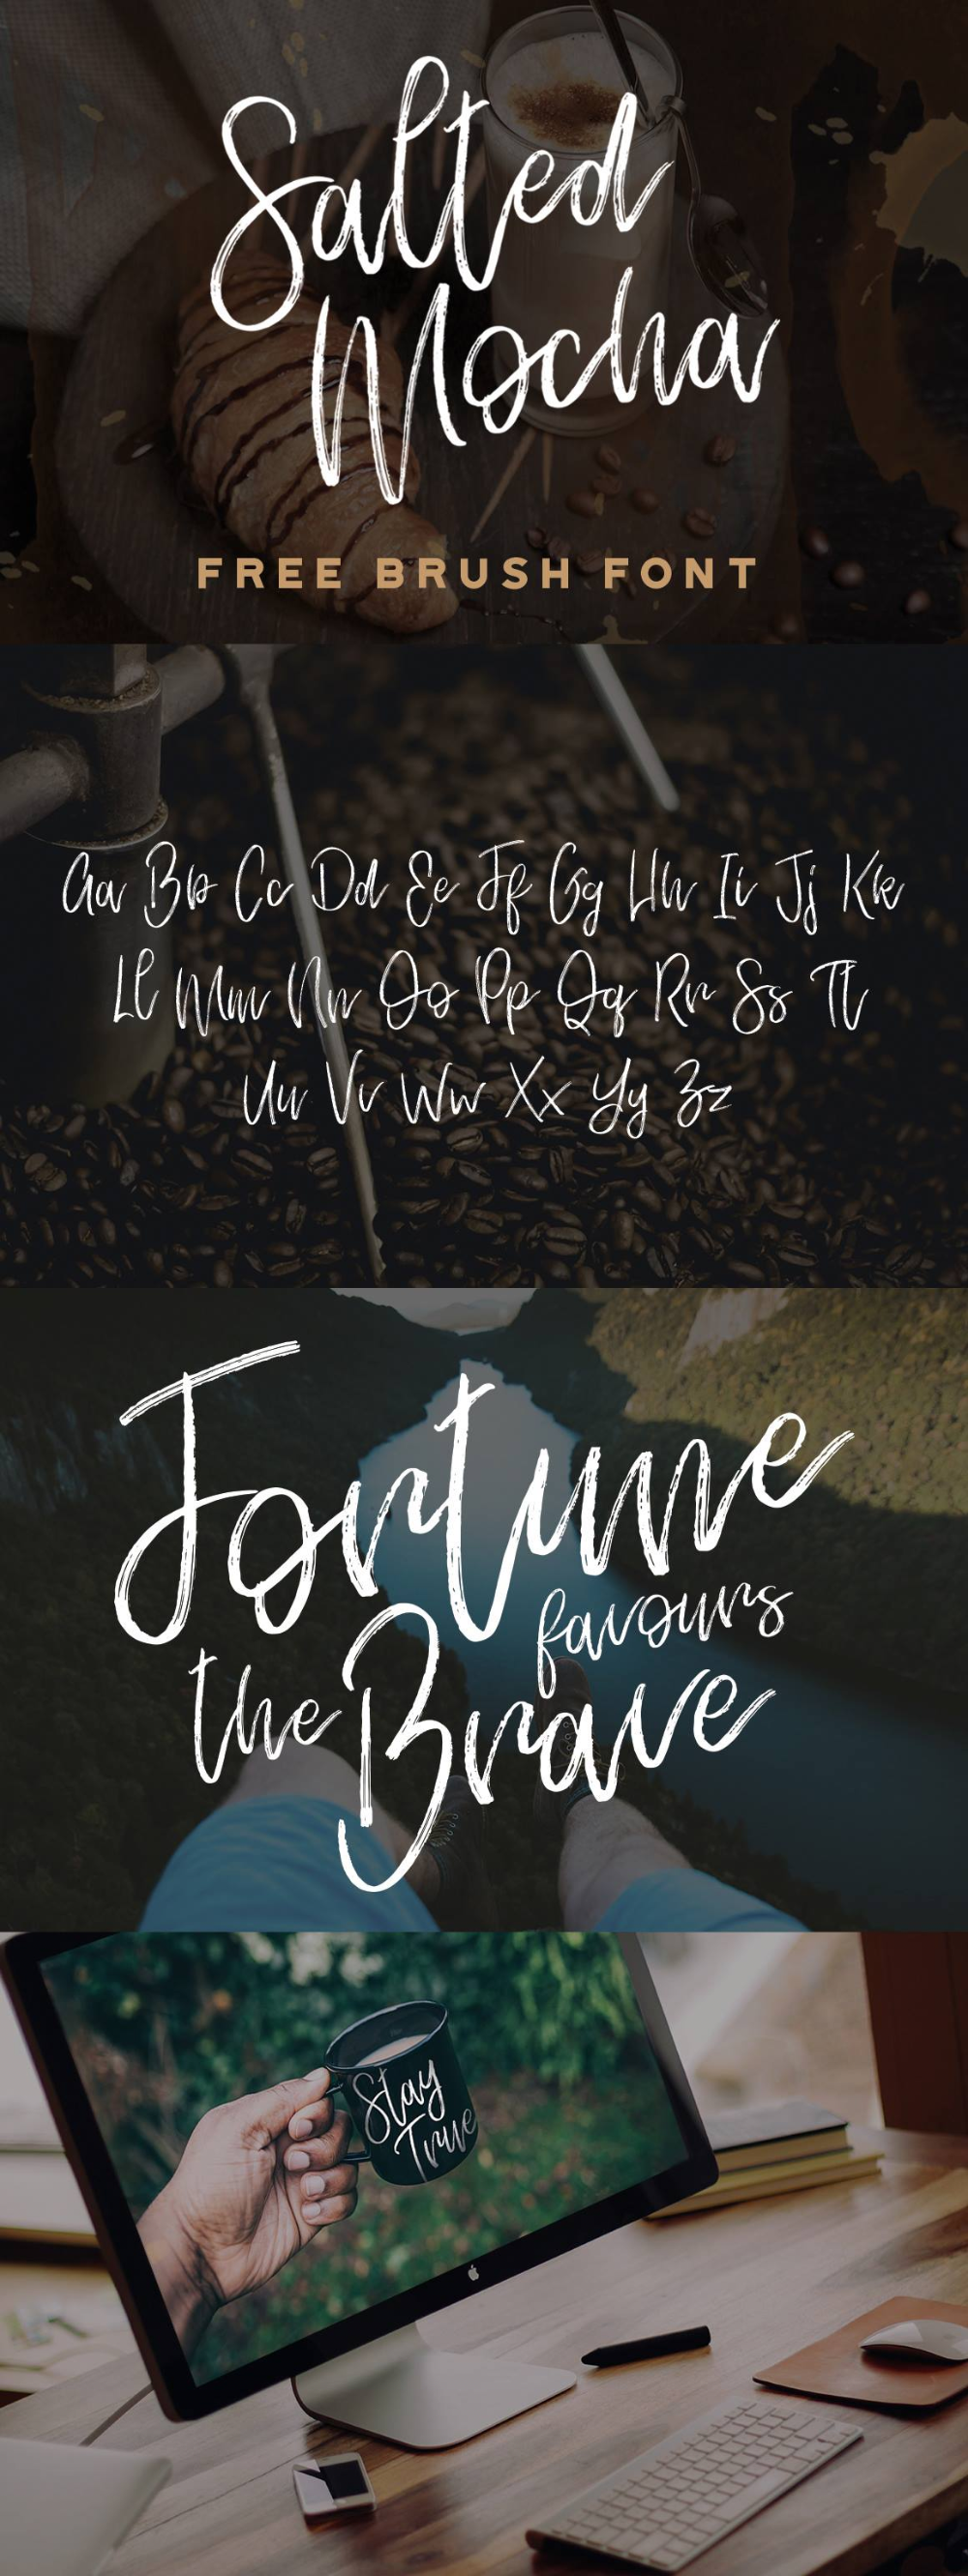 Download SALTED MOCHA (With images)   Free brush script font, Brush ...